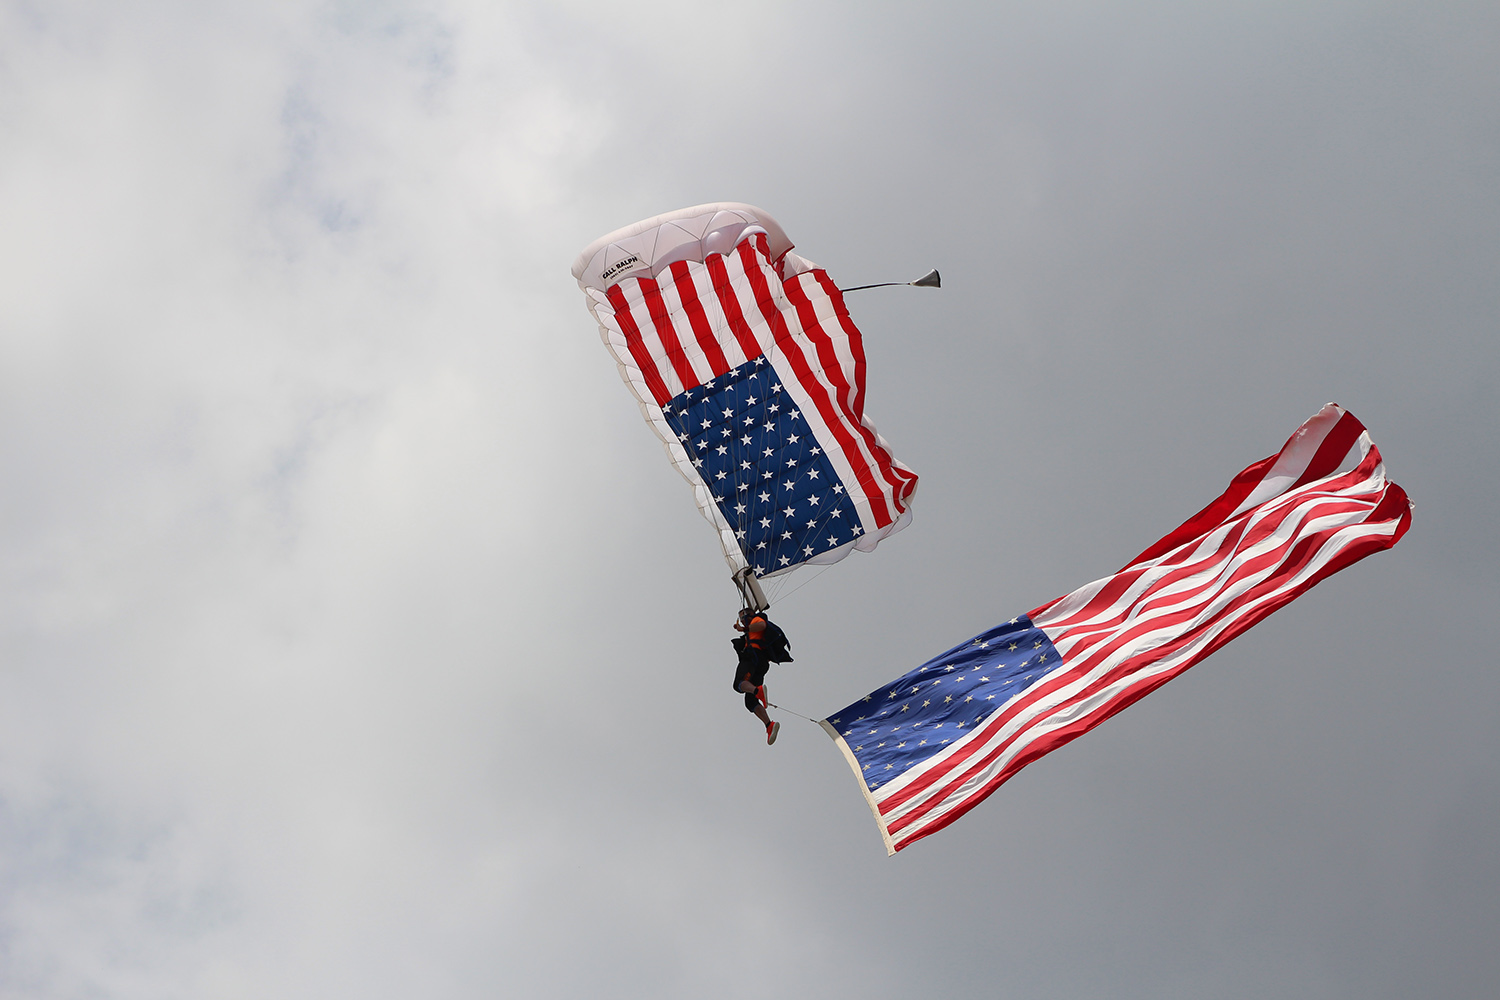 A pro-rated skydiver flies the flag